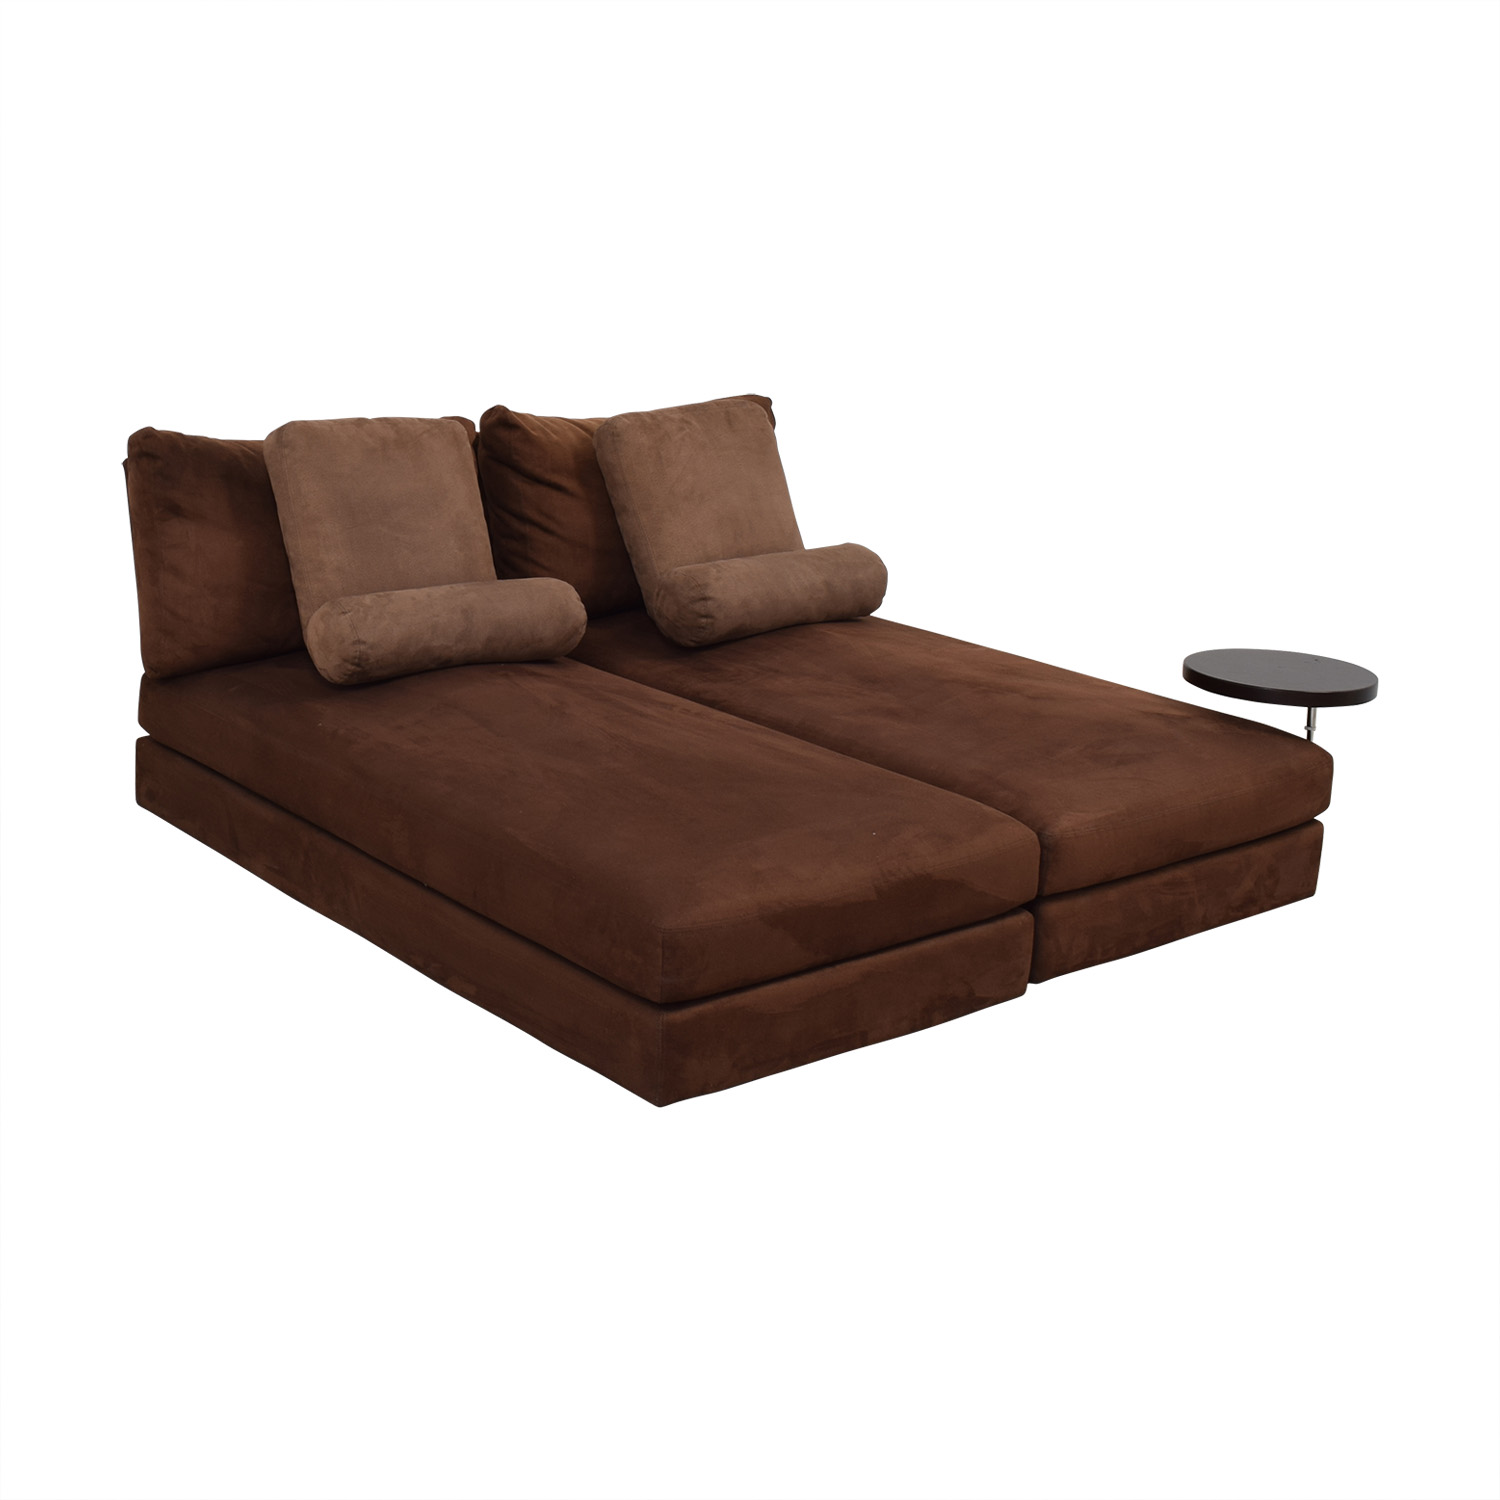 King Furniture Suede Chaise Sectional second hand